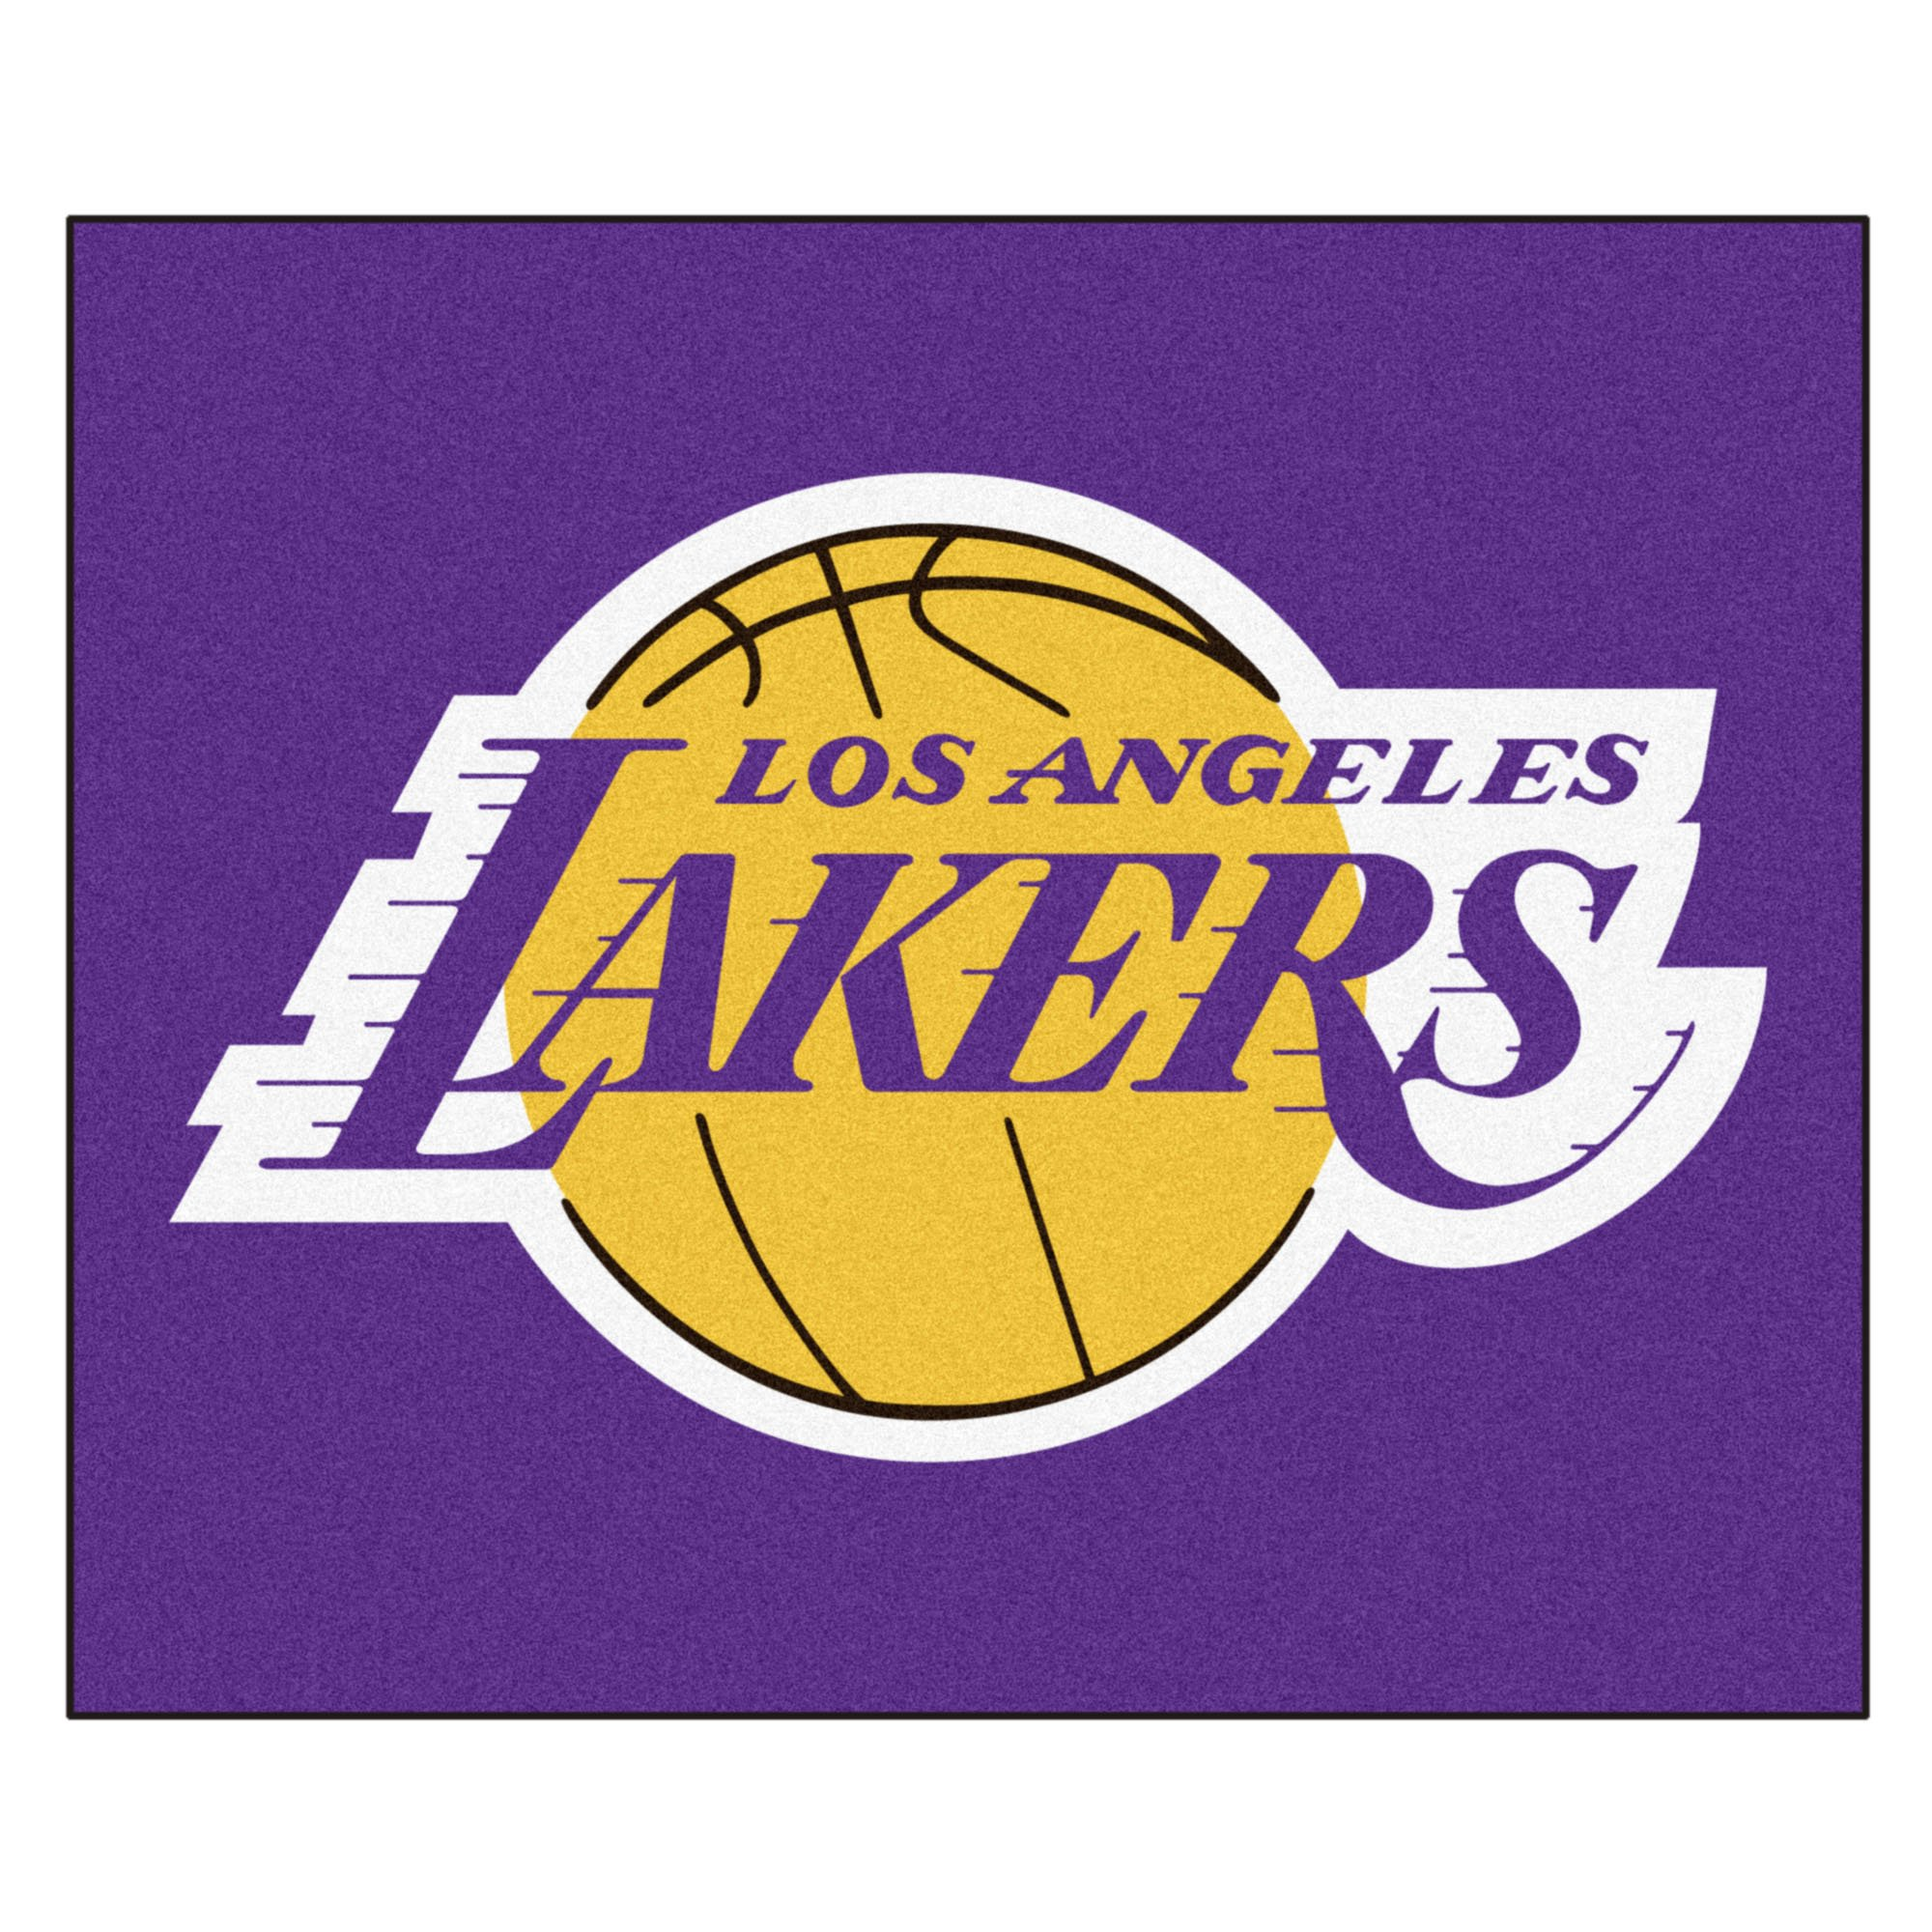 FANMATS 11332 NBA - Los Angeles Lakers Tailgater Rug , Team Color, 59.5''x71'' by Fanmats